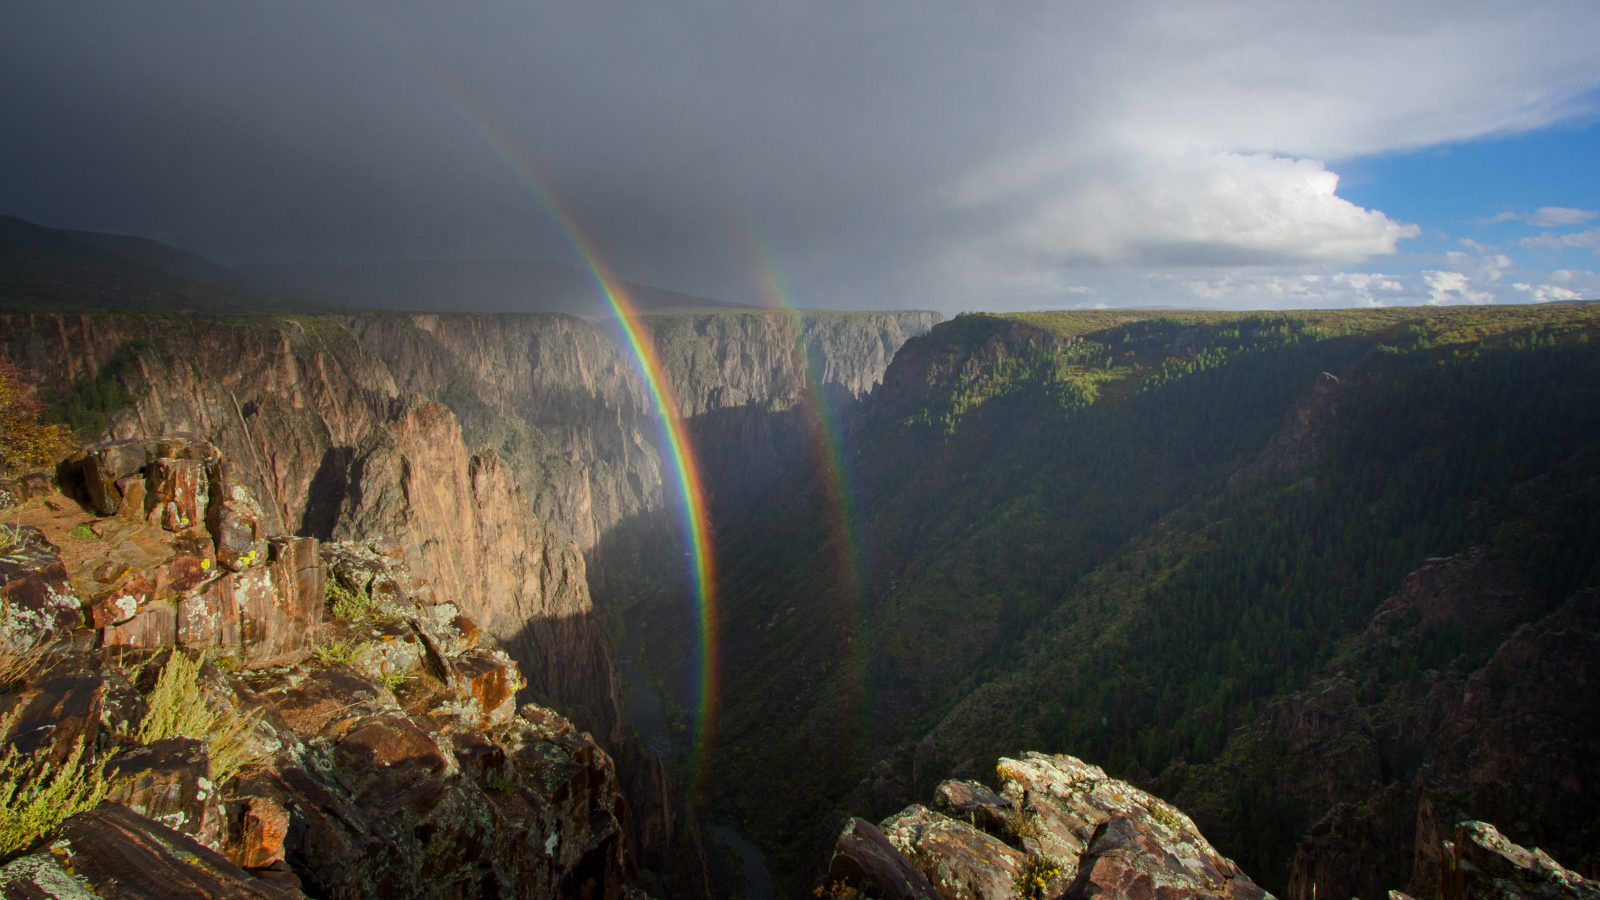 Light spills into the Black Canyon